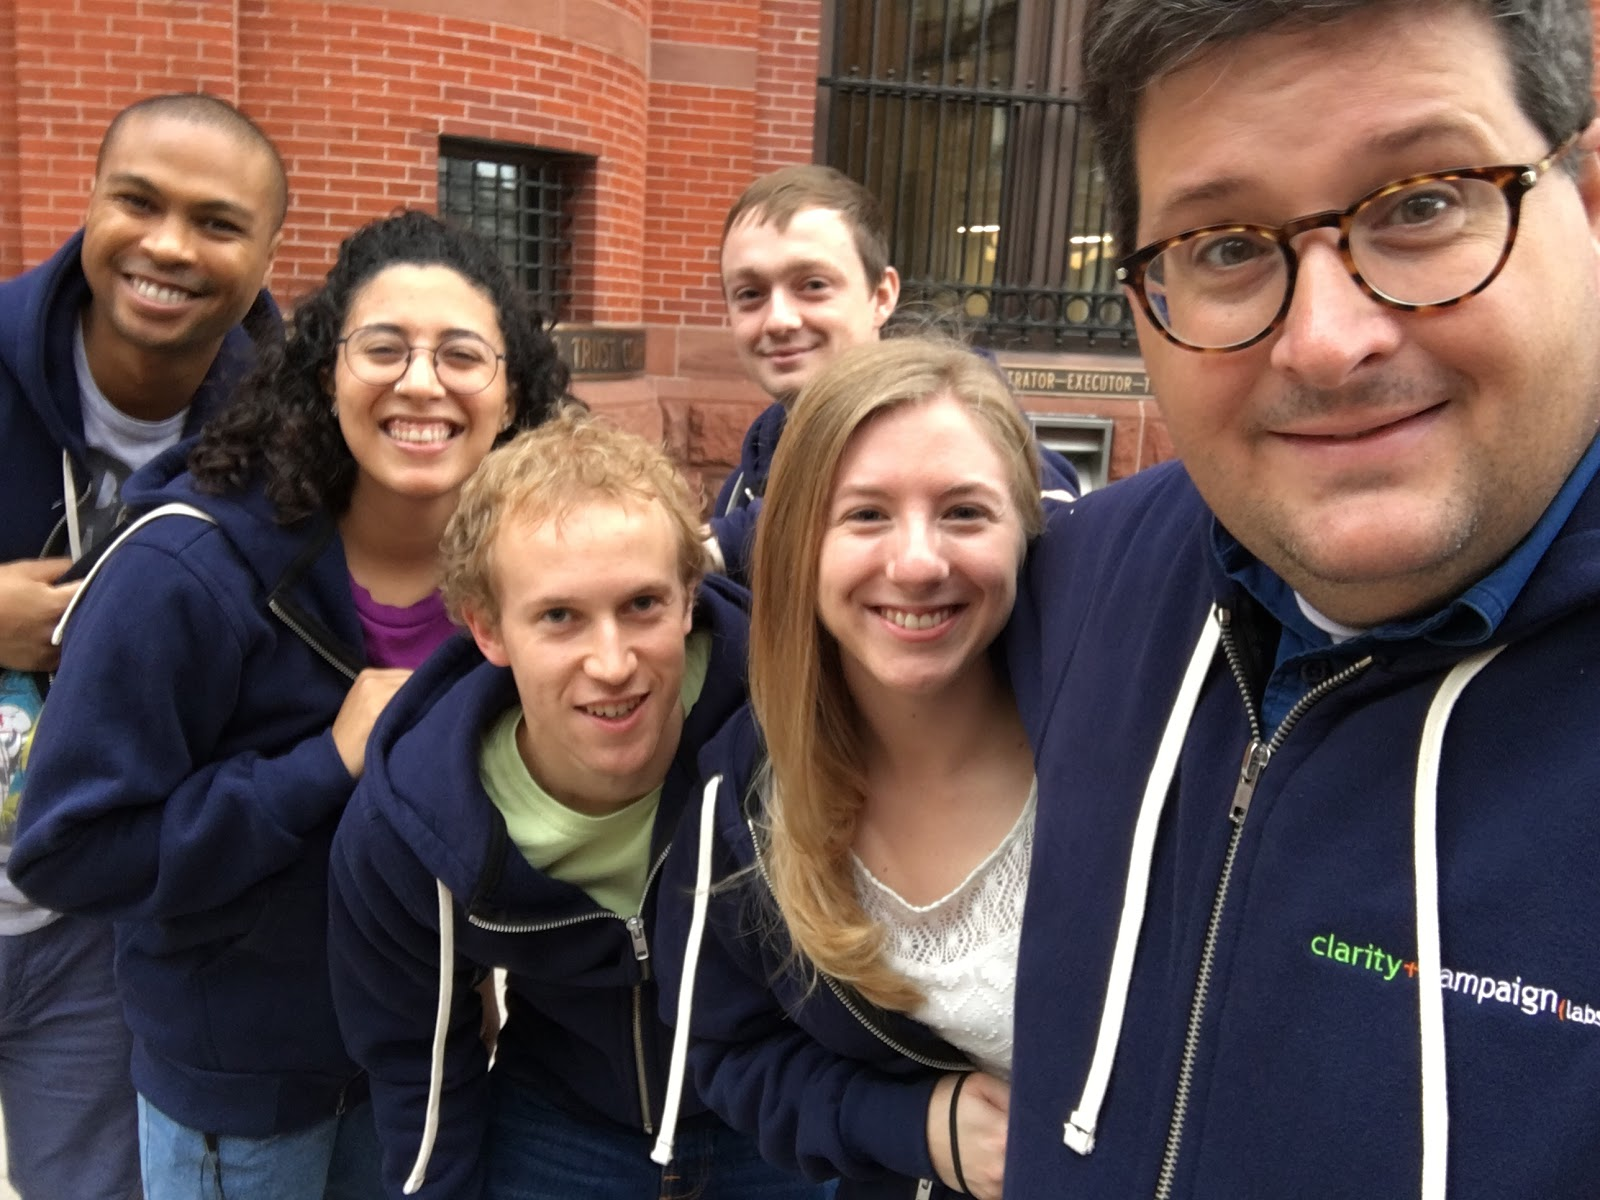 Clarity team canvassing in their matching hoodies for GOTV weekend 2018.